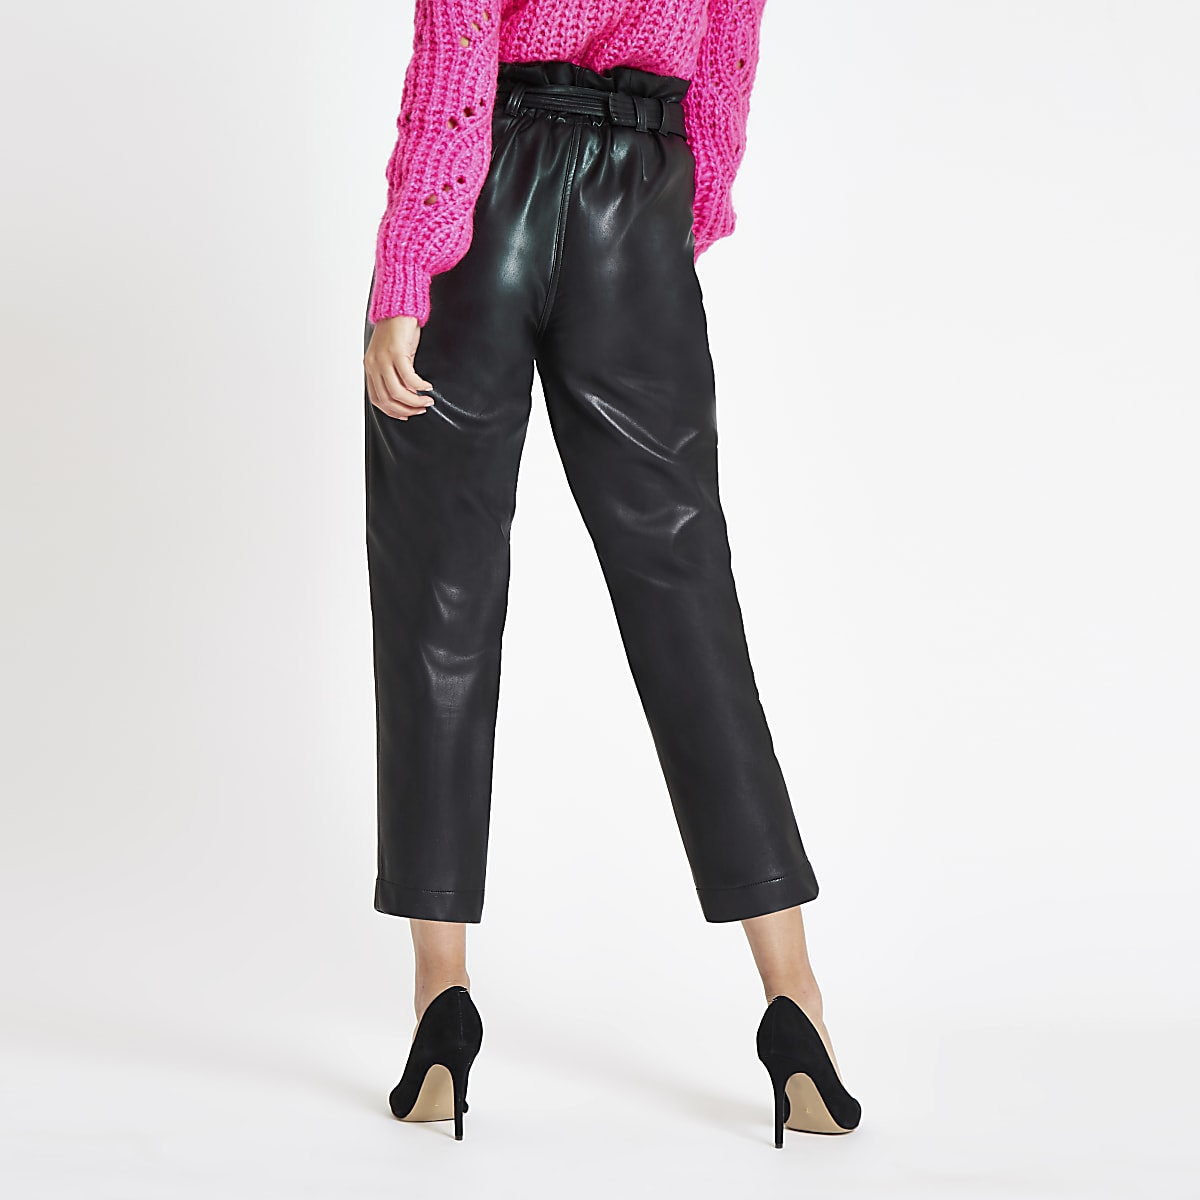 5047a630b98 Black faux leather paperbag waist trousers - Tapered Trousers ...